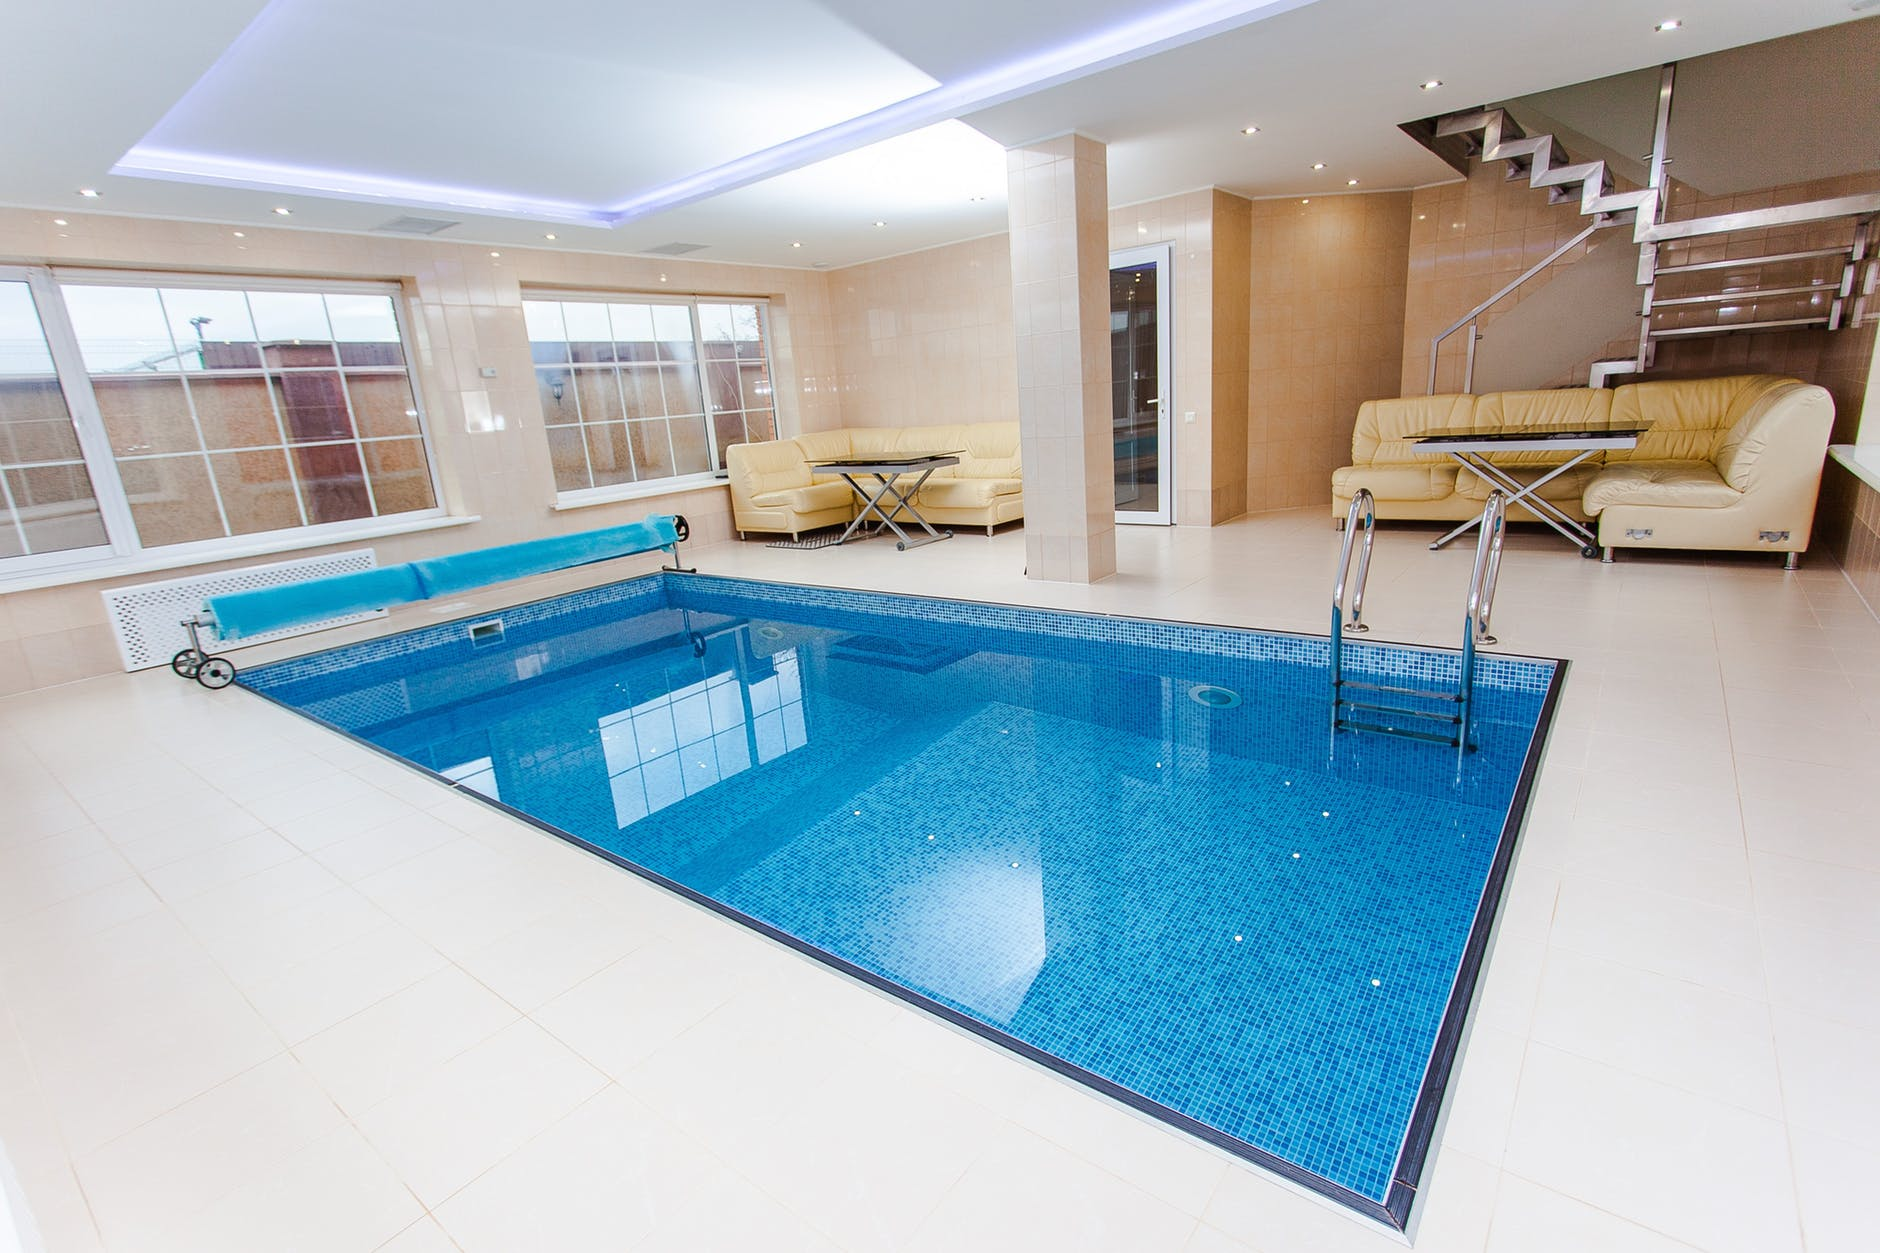 5 Things You Must Consider Before Getting An Indoor Swimming Pool